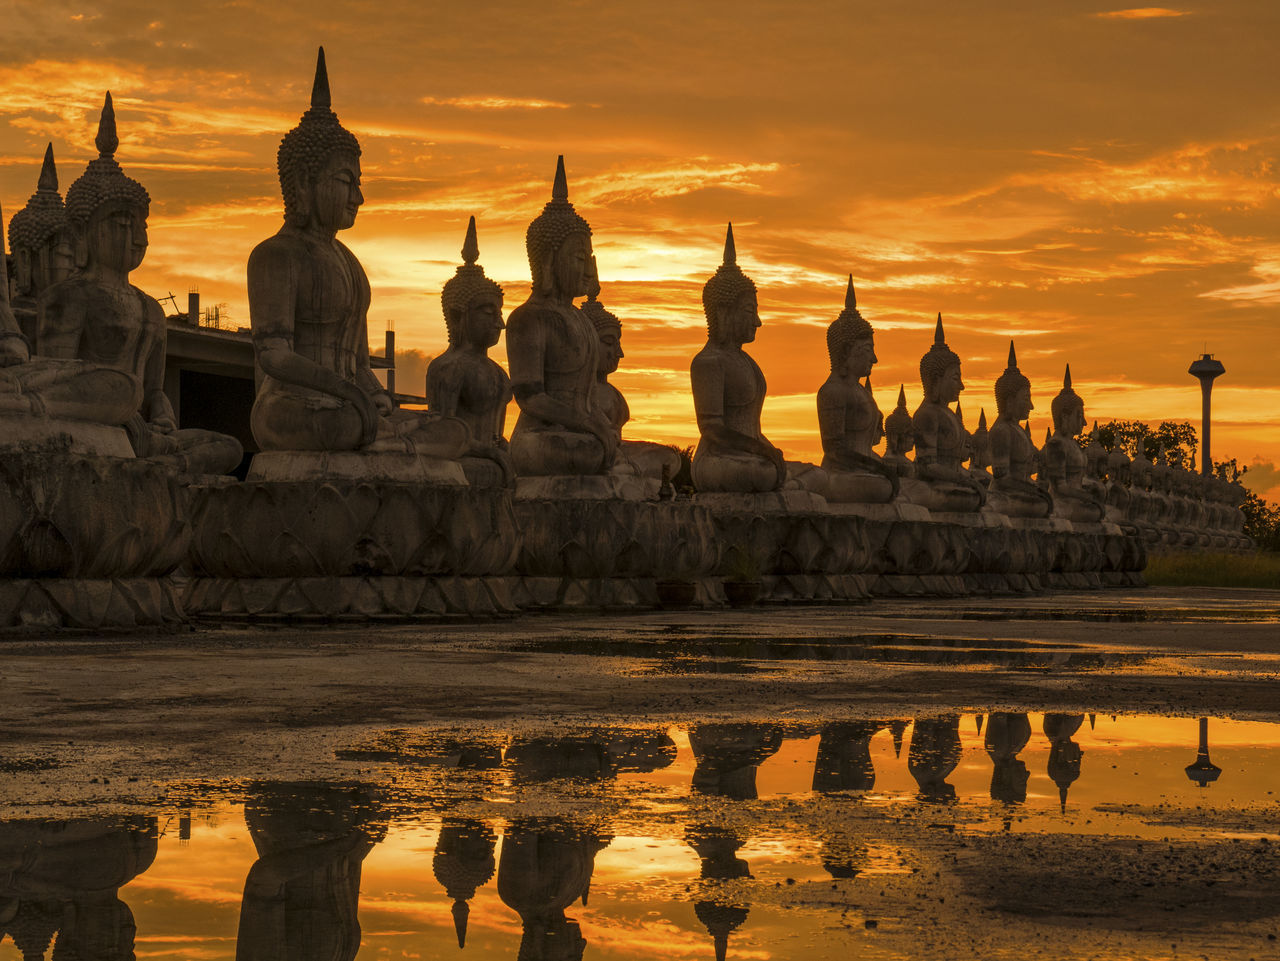 Ancient Ancient Civilization Architecture Buddha Building Exterior Built Structure Cloud - Sky Day History Nakhon Si Thammarat Nature No People Orange Color Outdoors Place Of Worship Reflection Religion Sculpture Sky Spirituality Statue Sunset Travel Destinations Water